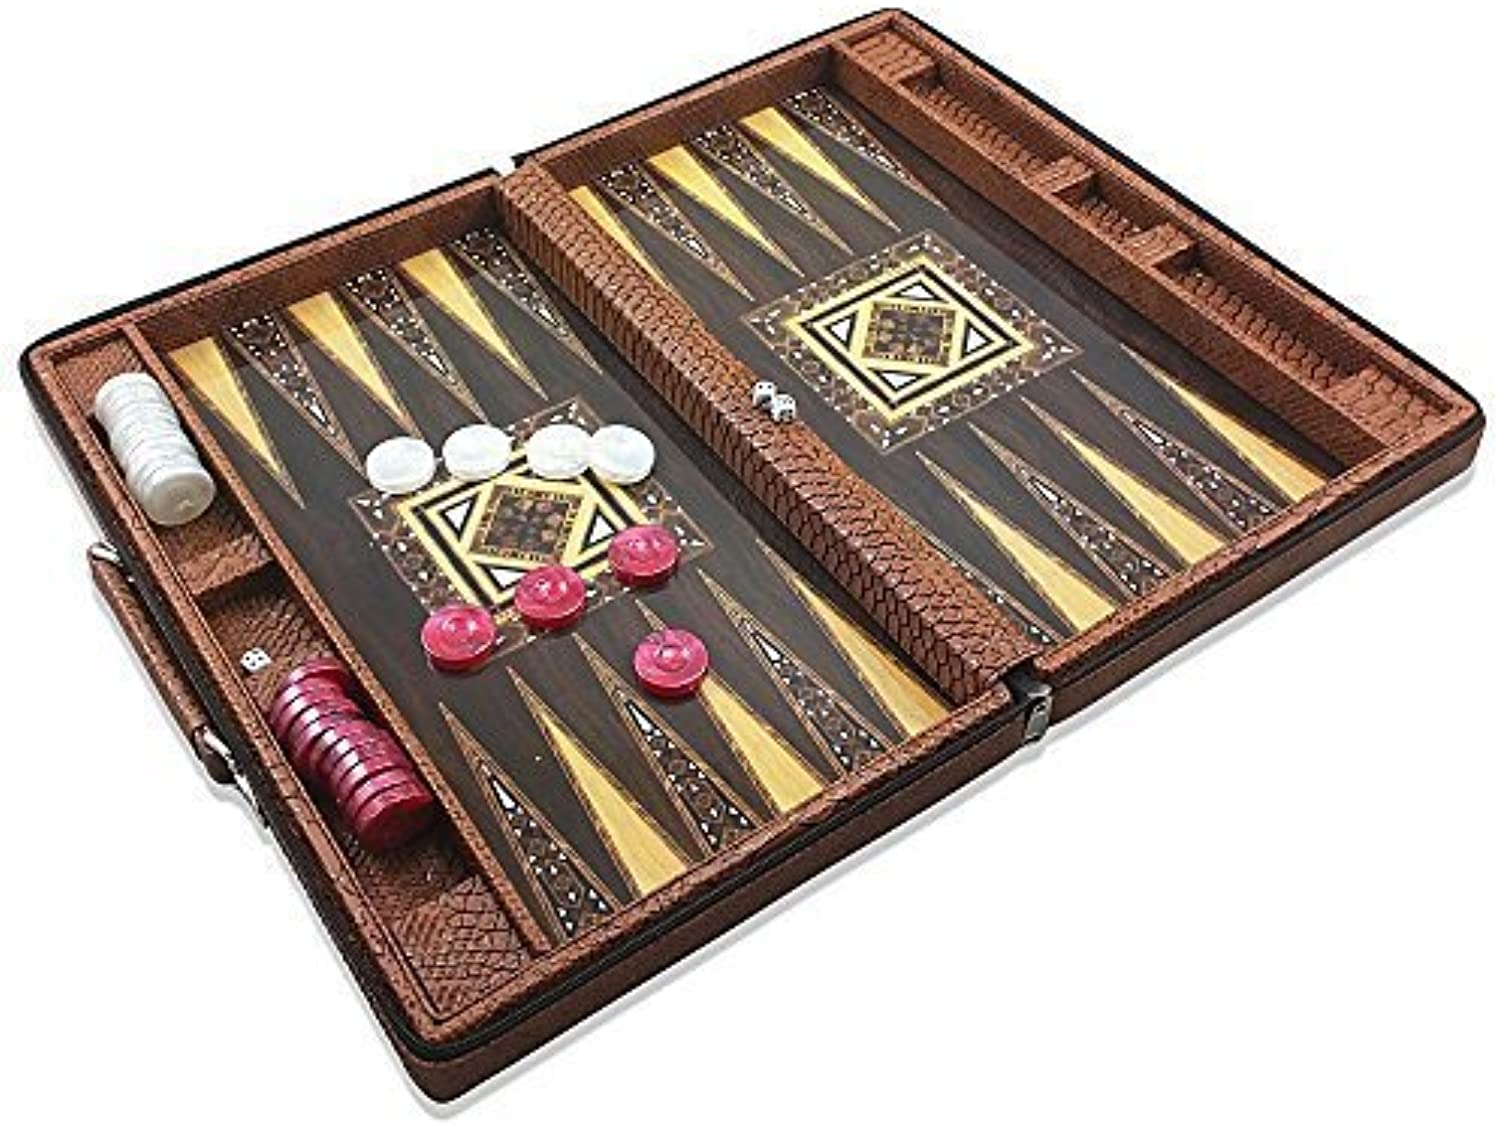 Luxury Leather Backgammon Set - Board Game- 17.5 Travel Attache Case by Star